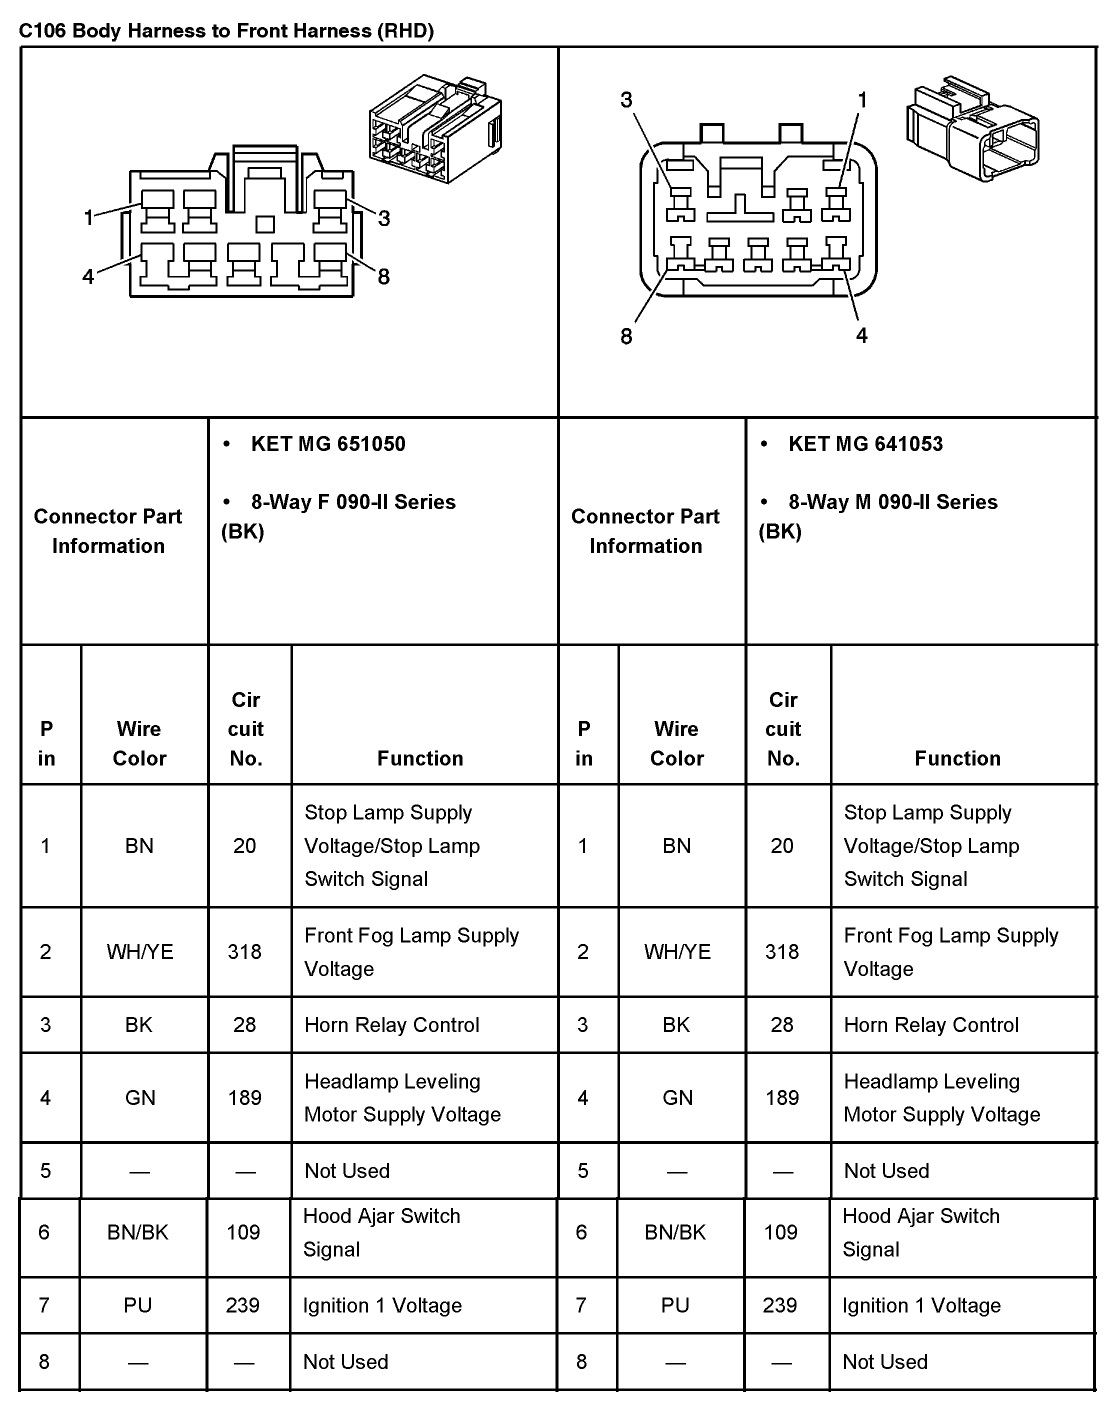 7331d1383704576 2005 aveo master connector list diagrams conn3 jpg 2005 aveo master connector list and diagrams 2010 chevy aveo headlight wiring diagram at panicattacktreatment.co